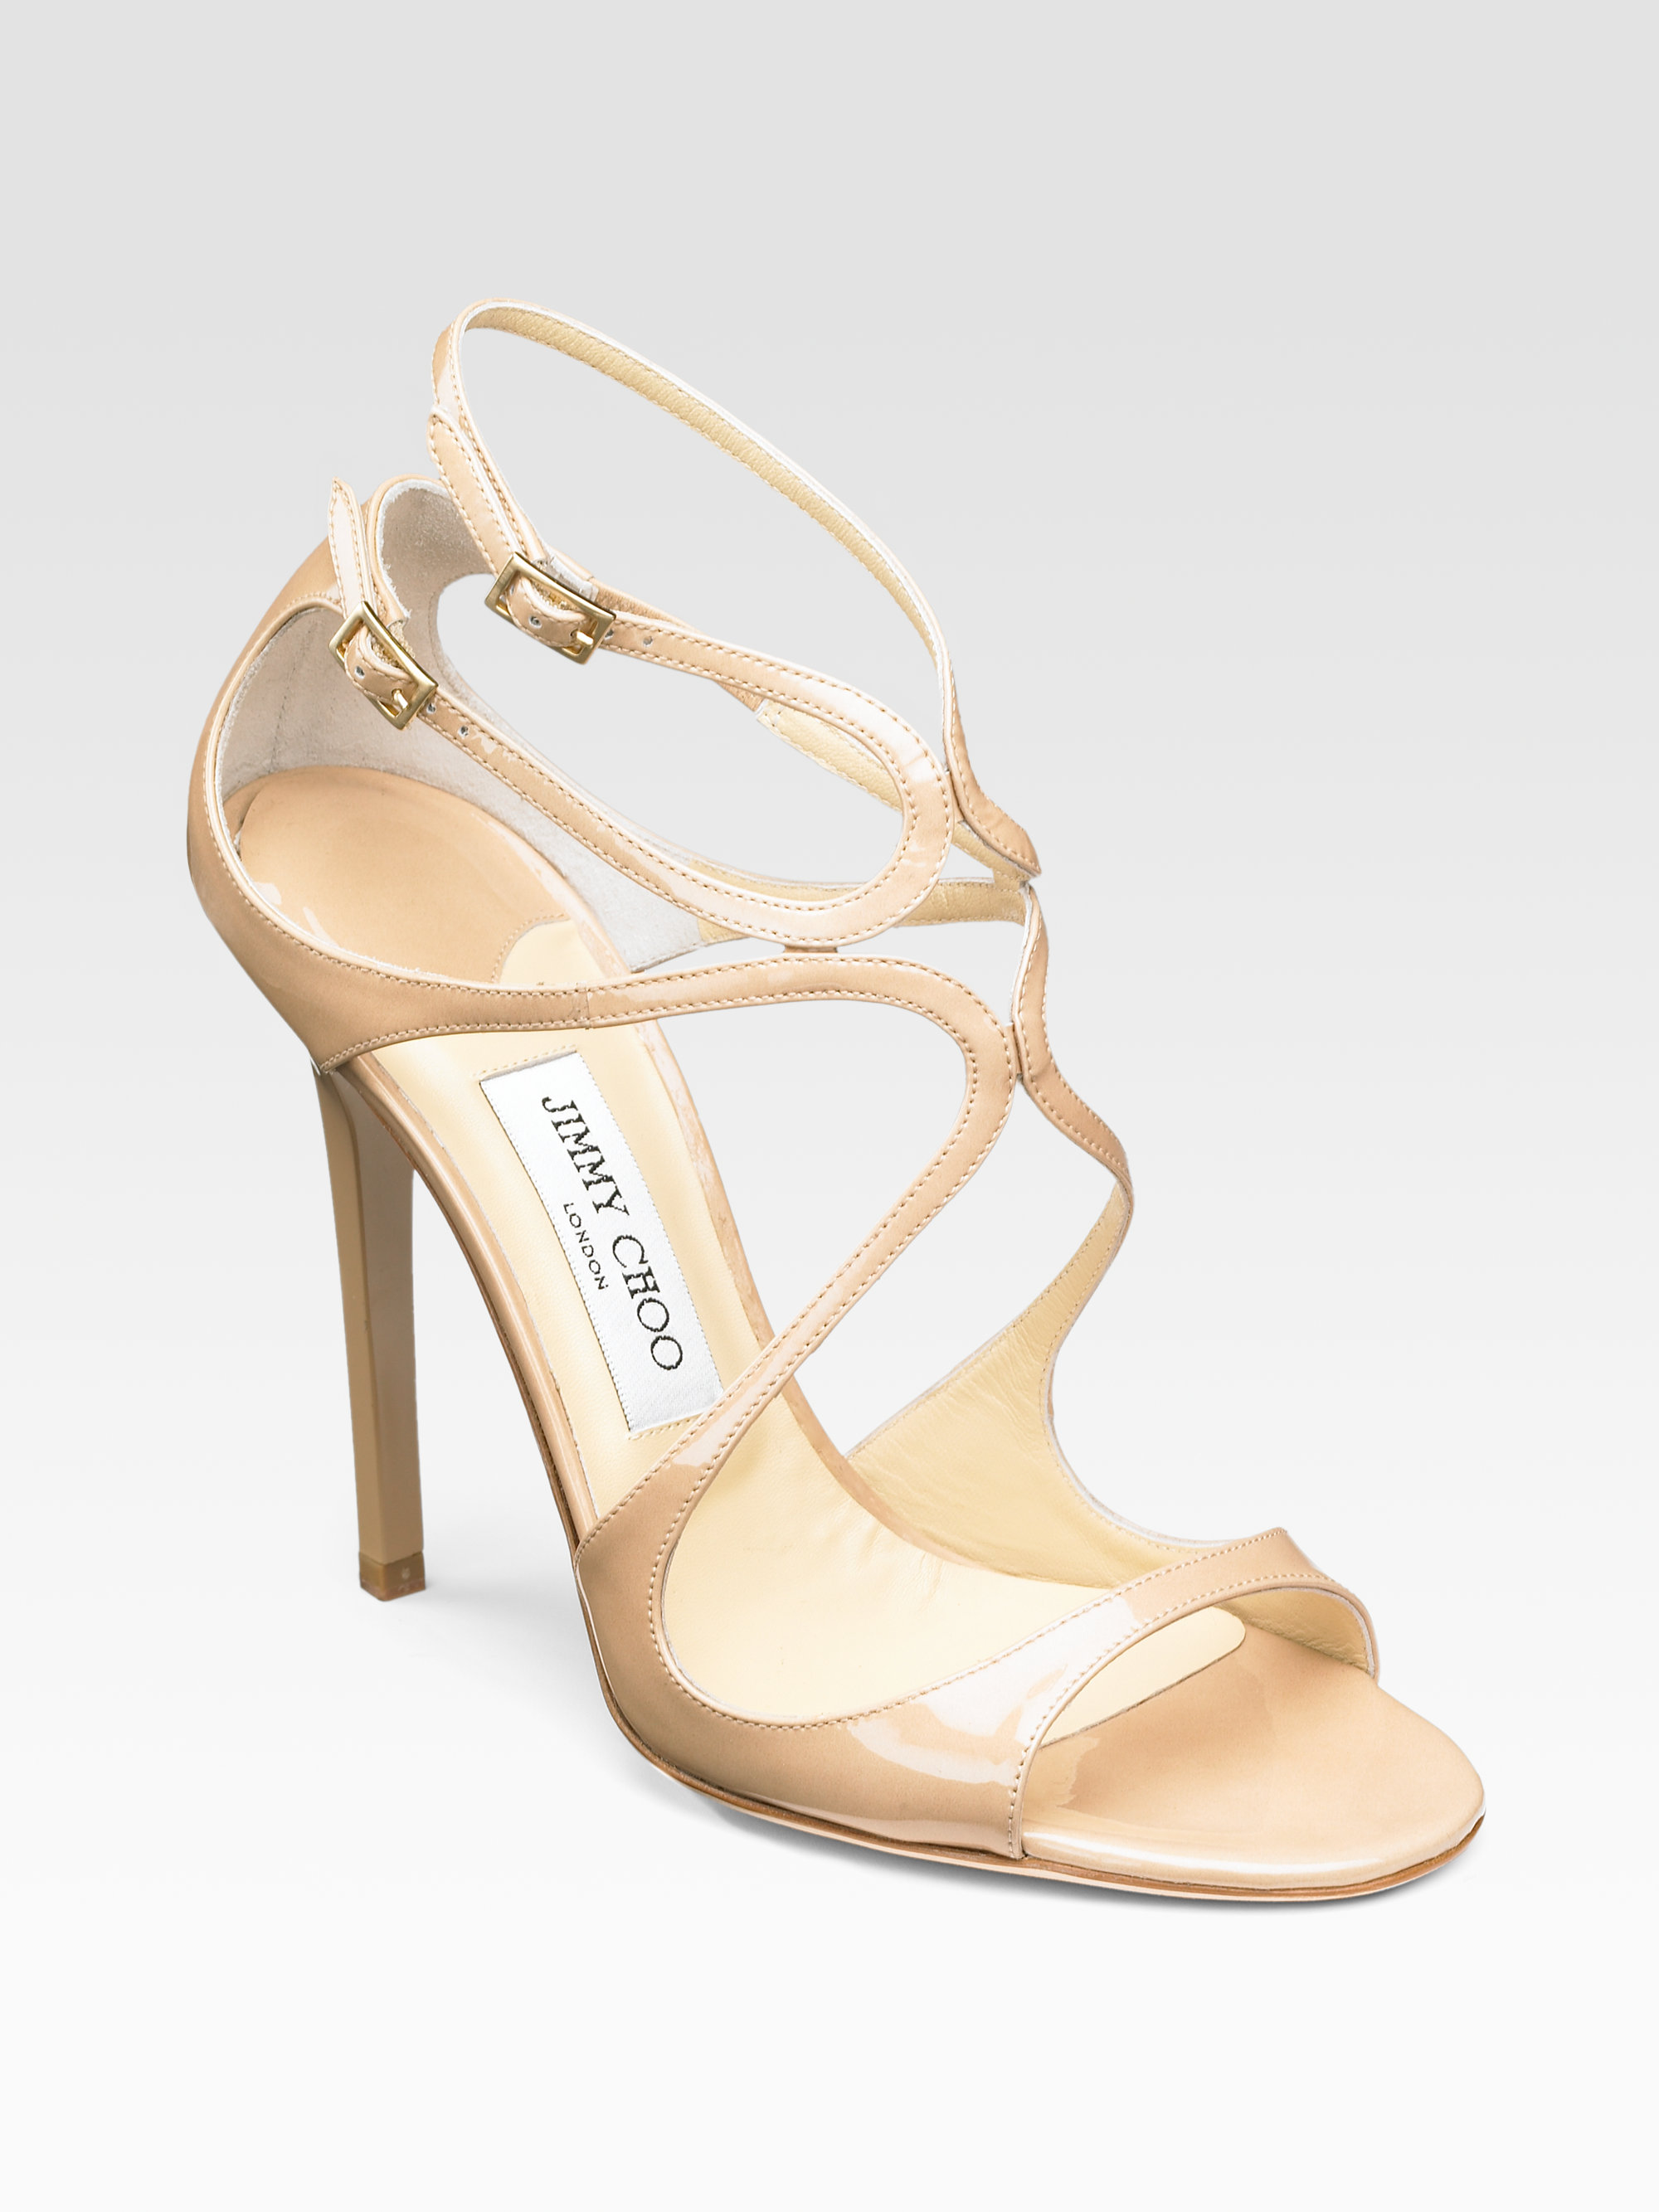 ca5615023eb Gallery. Previously sold at  Saks Fifth Avenue · Women s Jimmy Choo Lance  ...